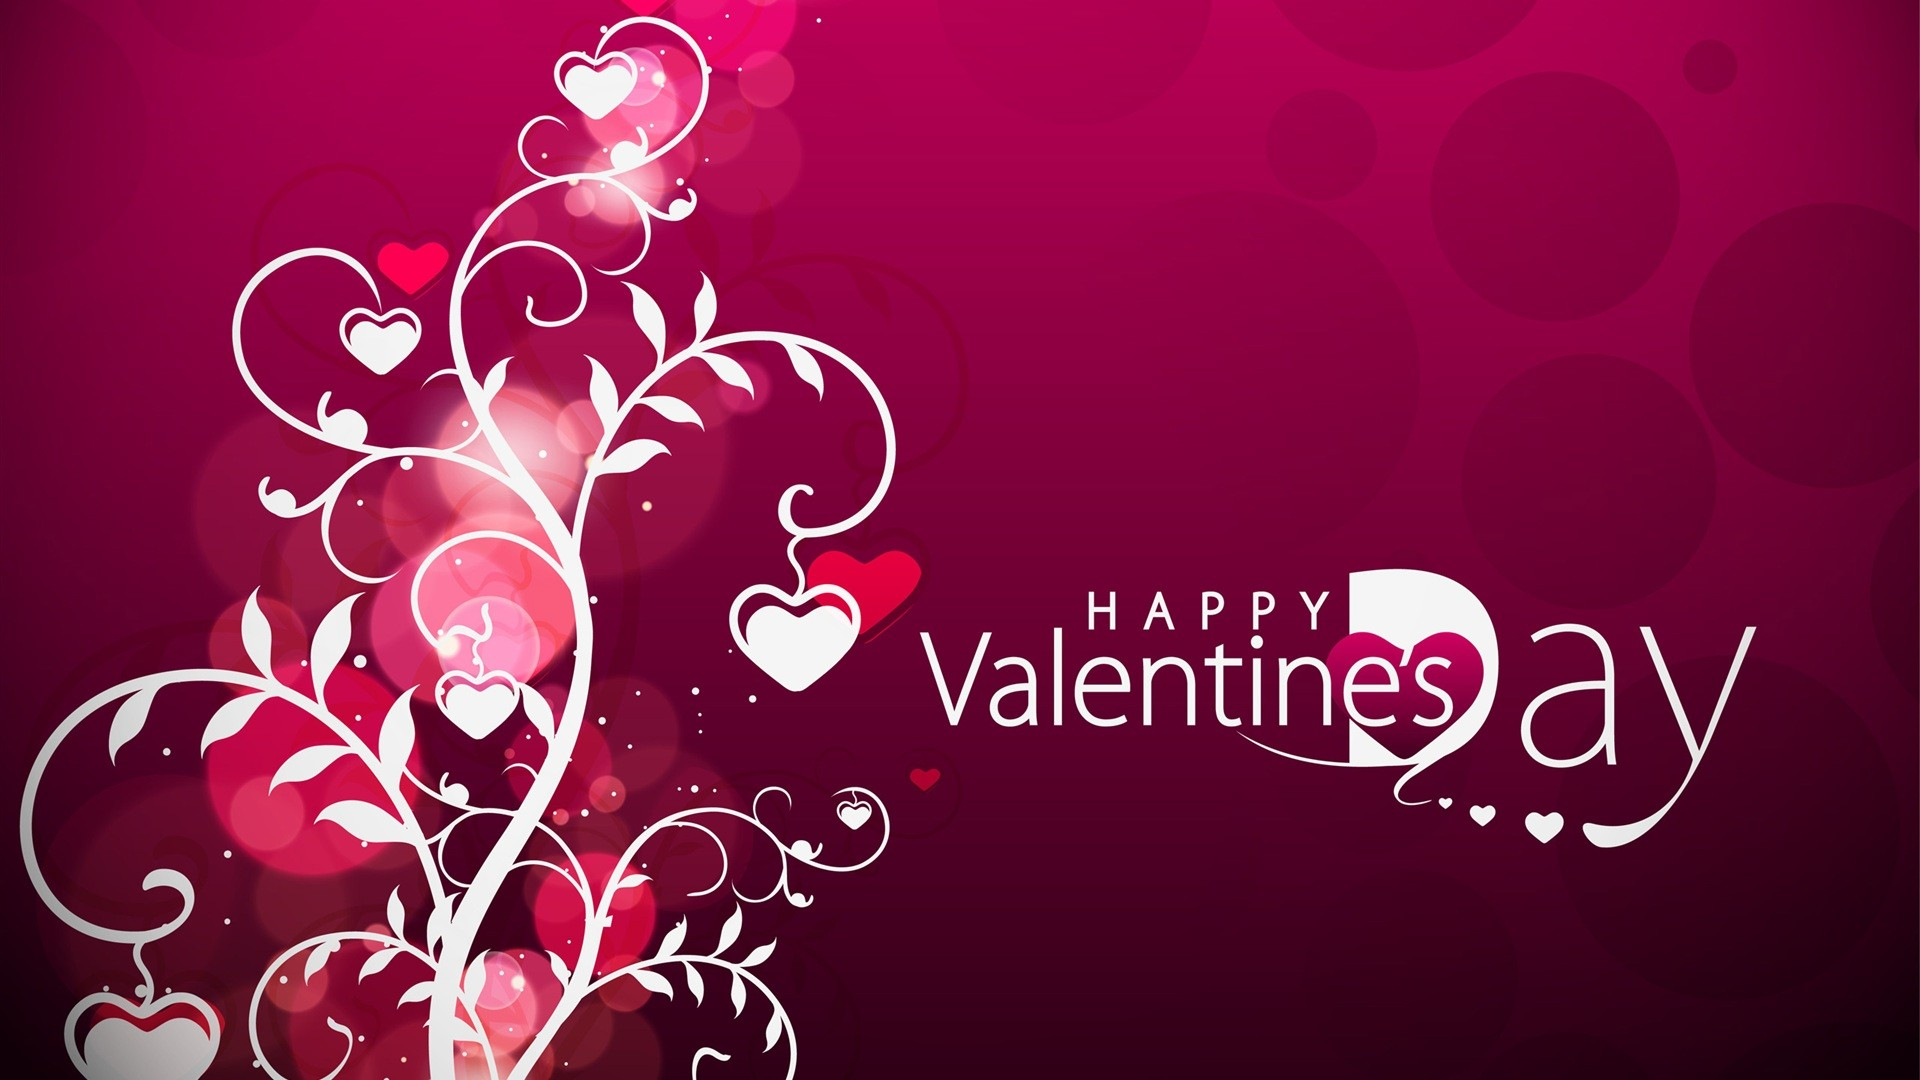 happy valentines day love hanging hearts hd wallpaper